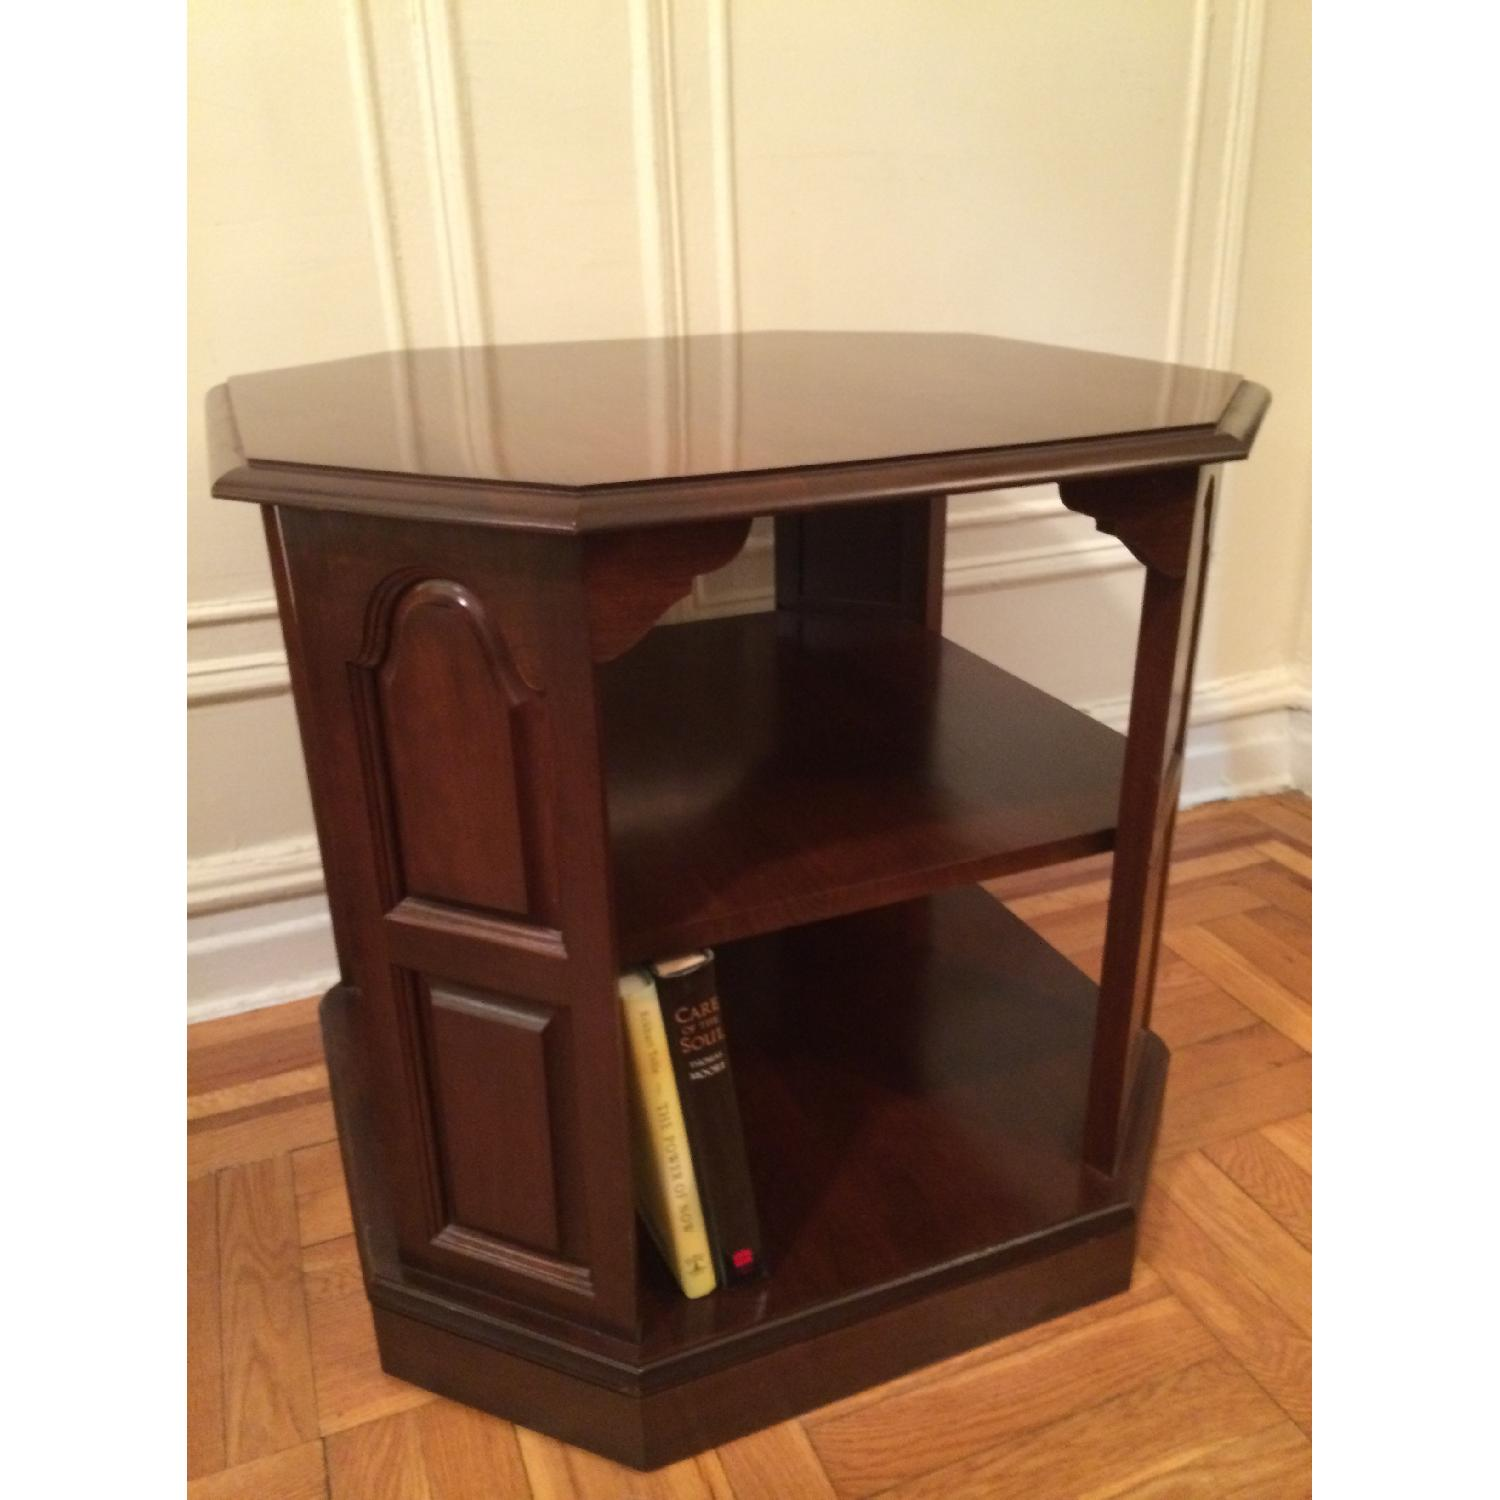 Mahogany-Stained Bookcase/End table - image-2